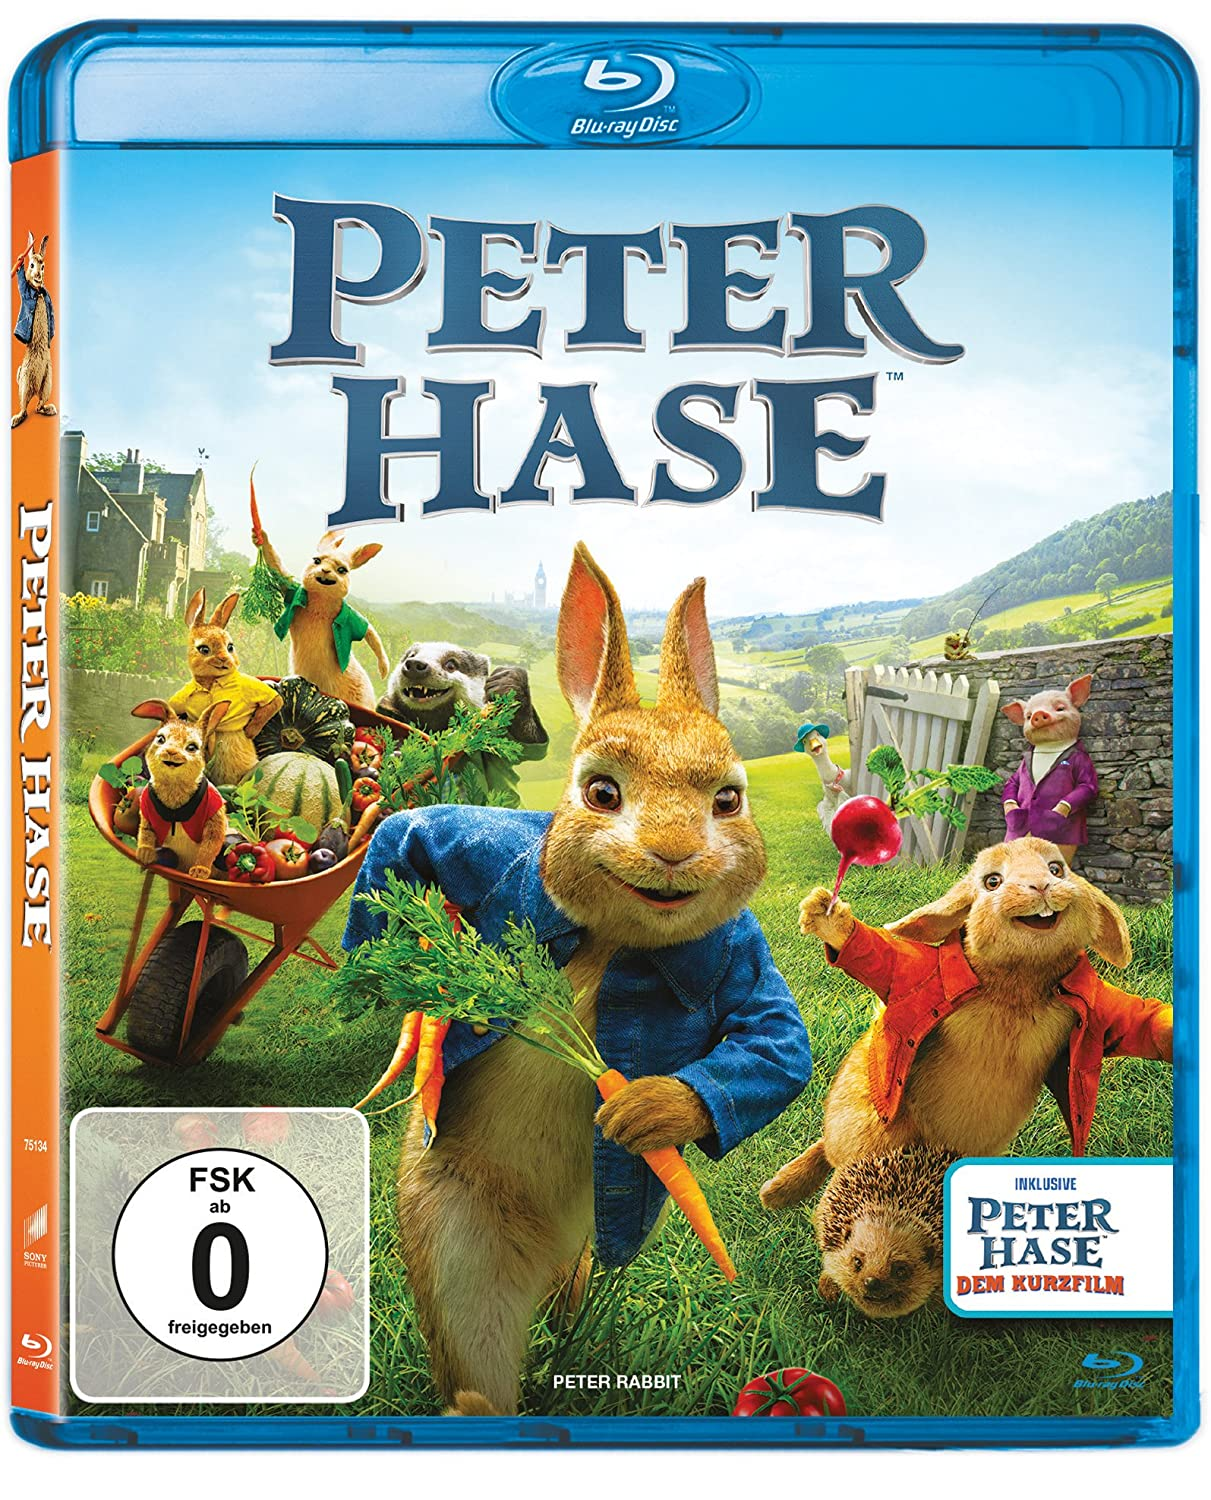 Peter Hase [Blu-ray]: Amazon.de: Christoph Maria Herbst, Heike ...